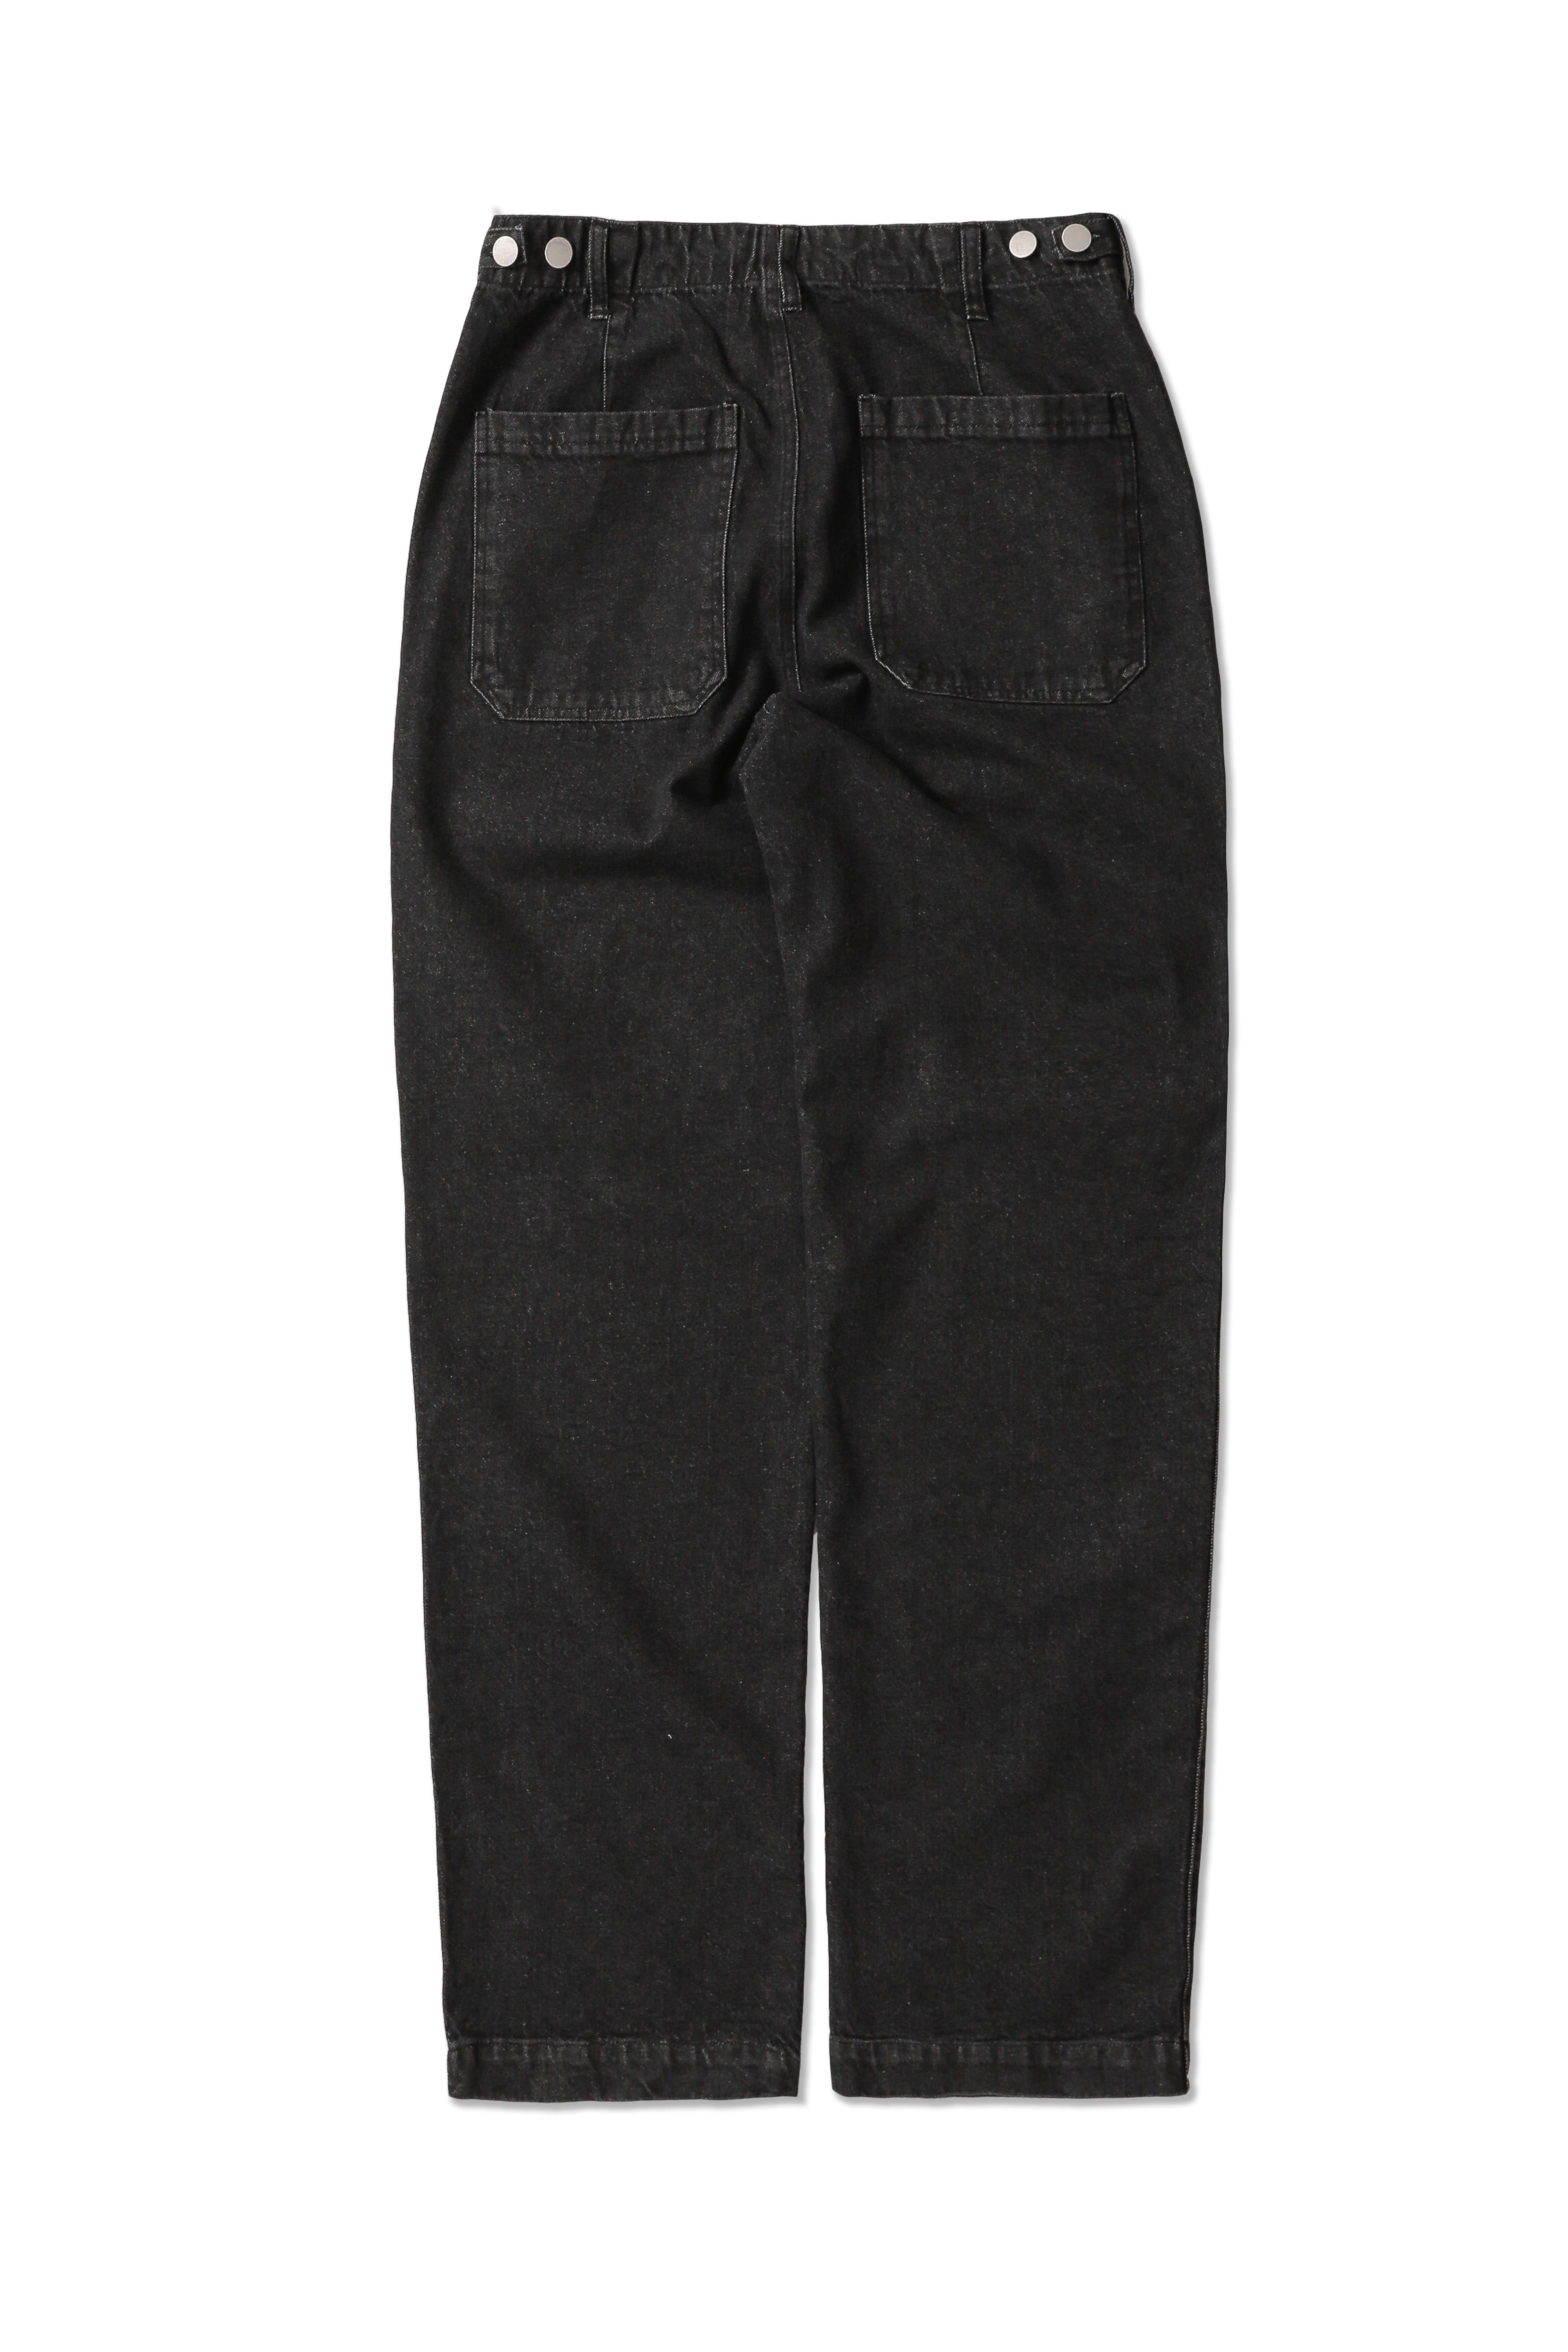 20'original fatigue pants - Black Jeans